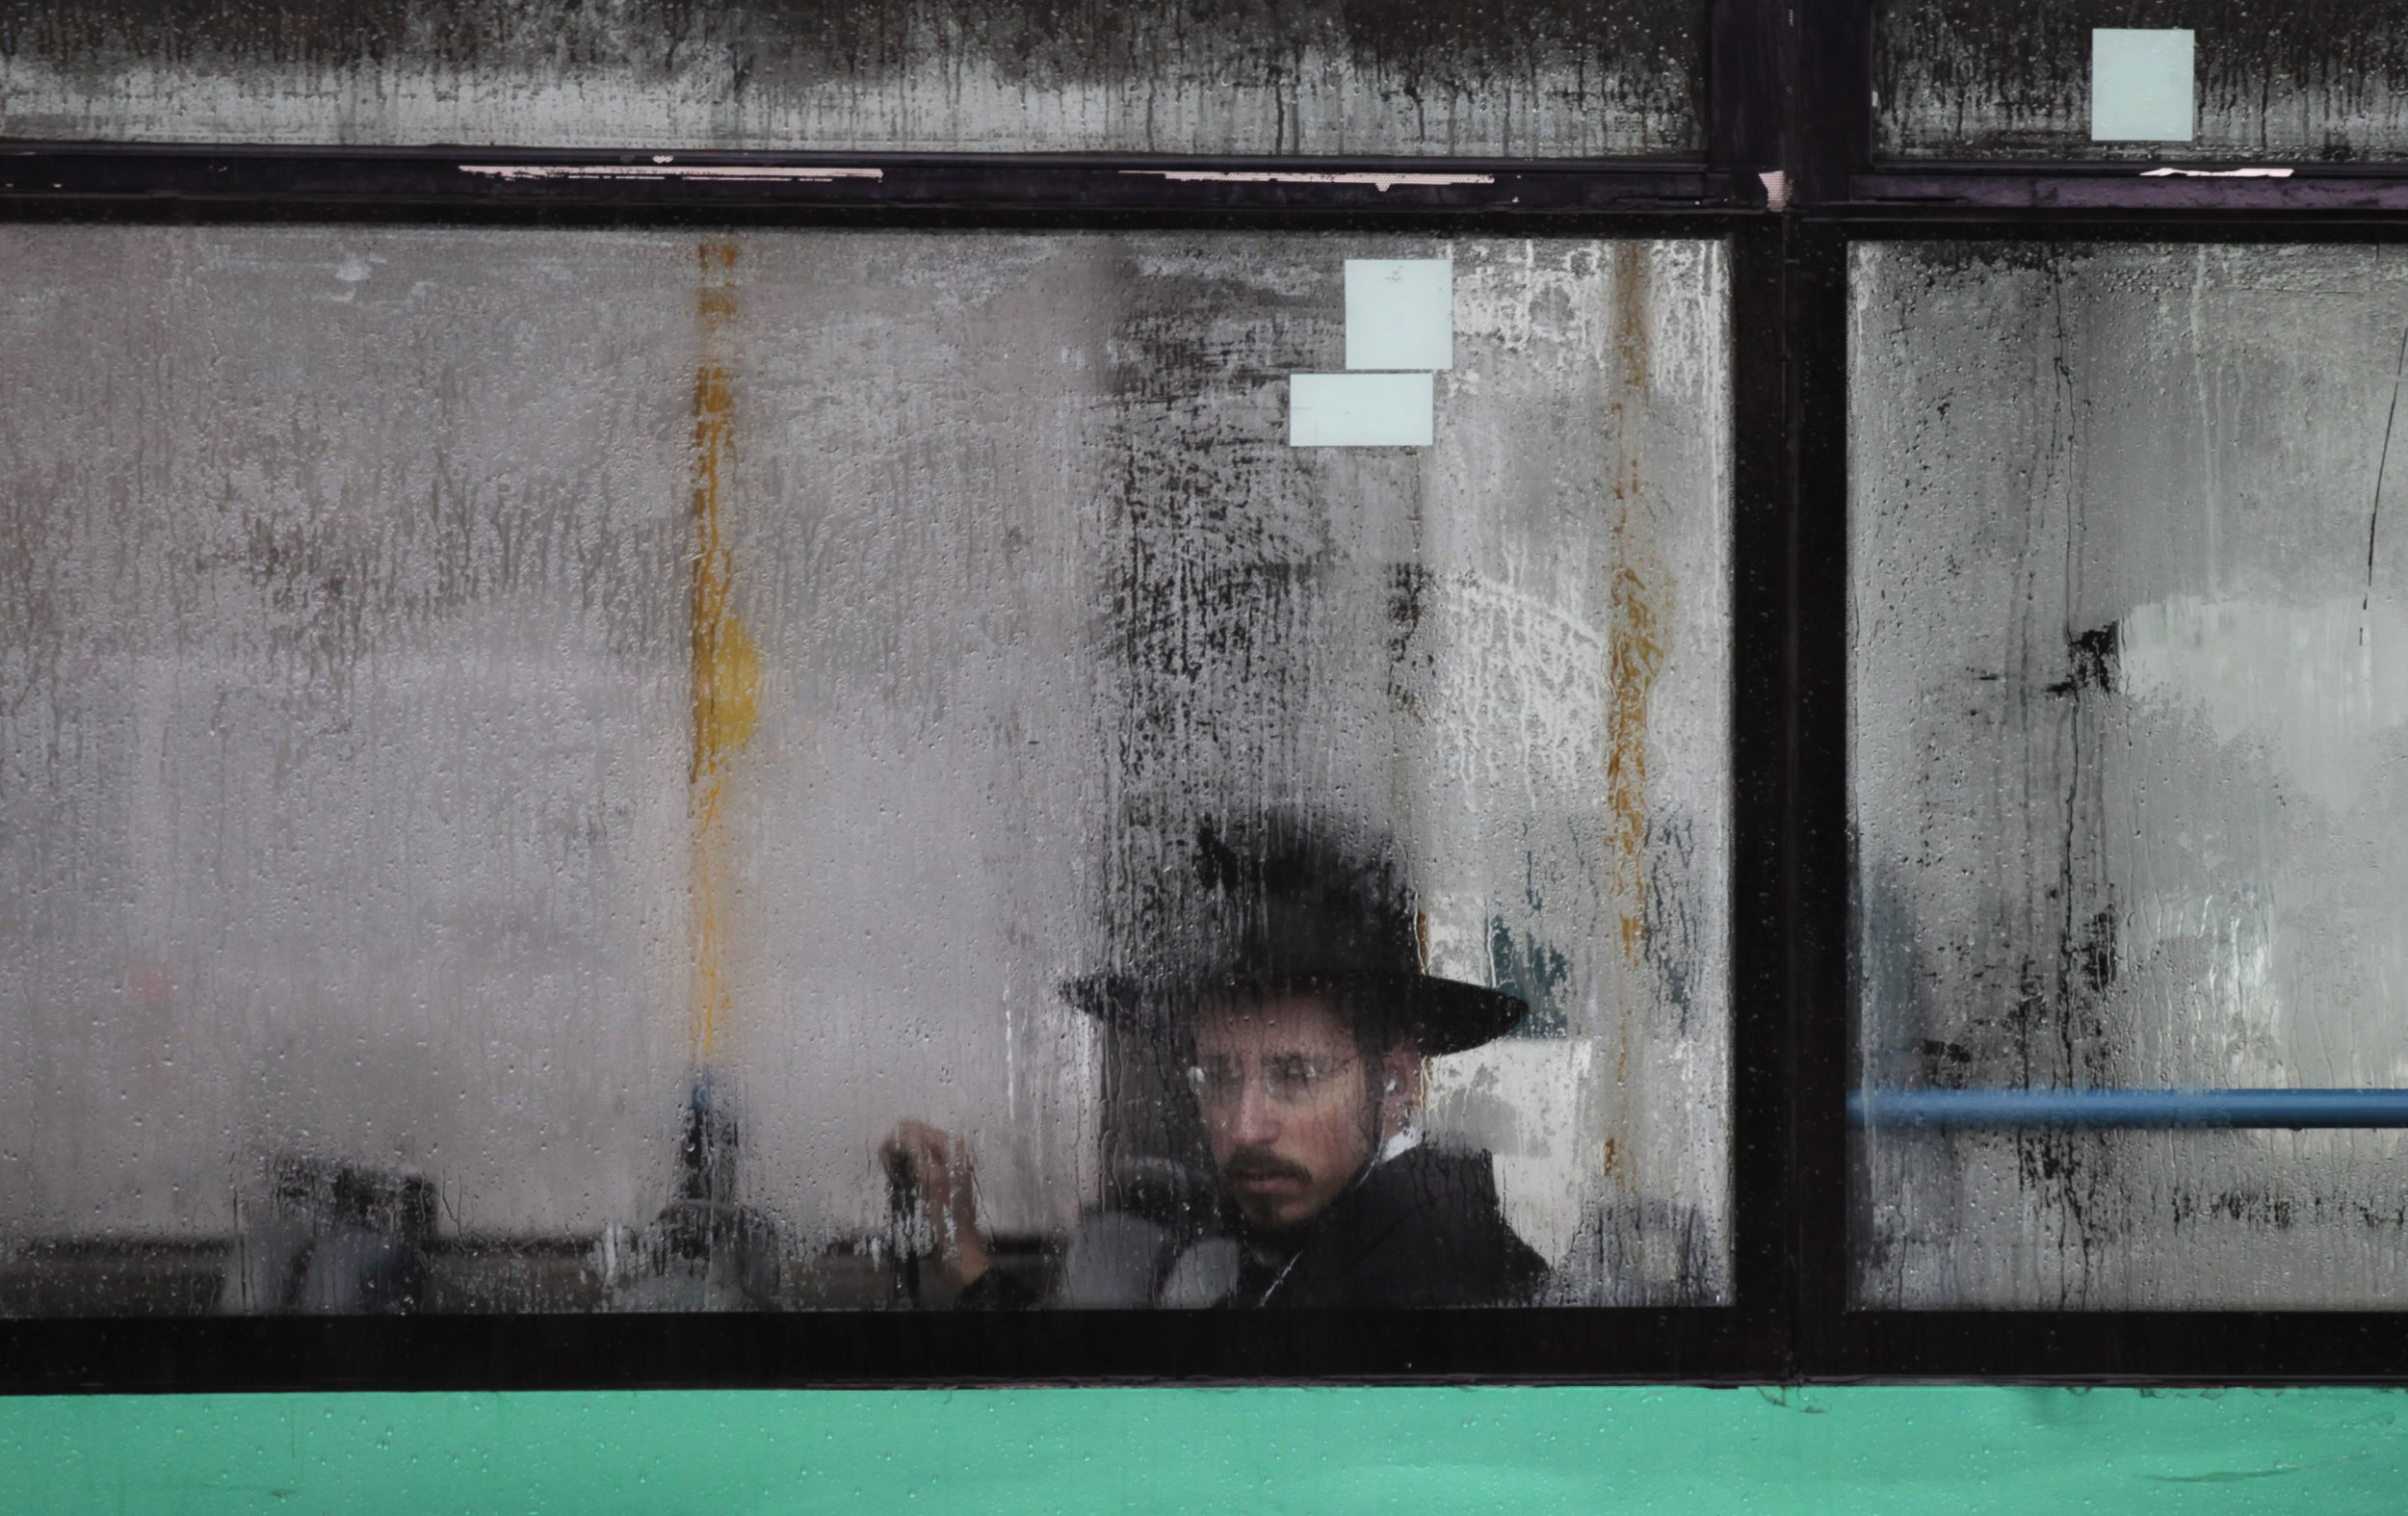 0107_Israel_Bus_Arab_Jew_01